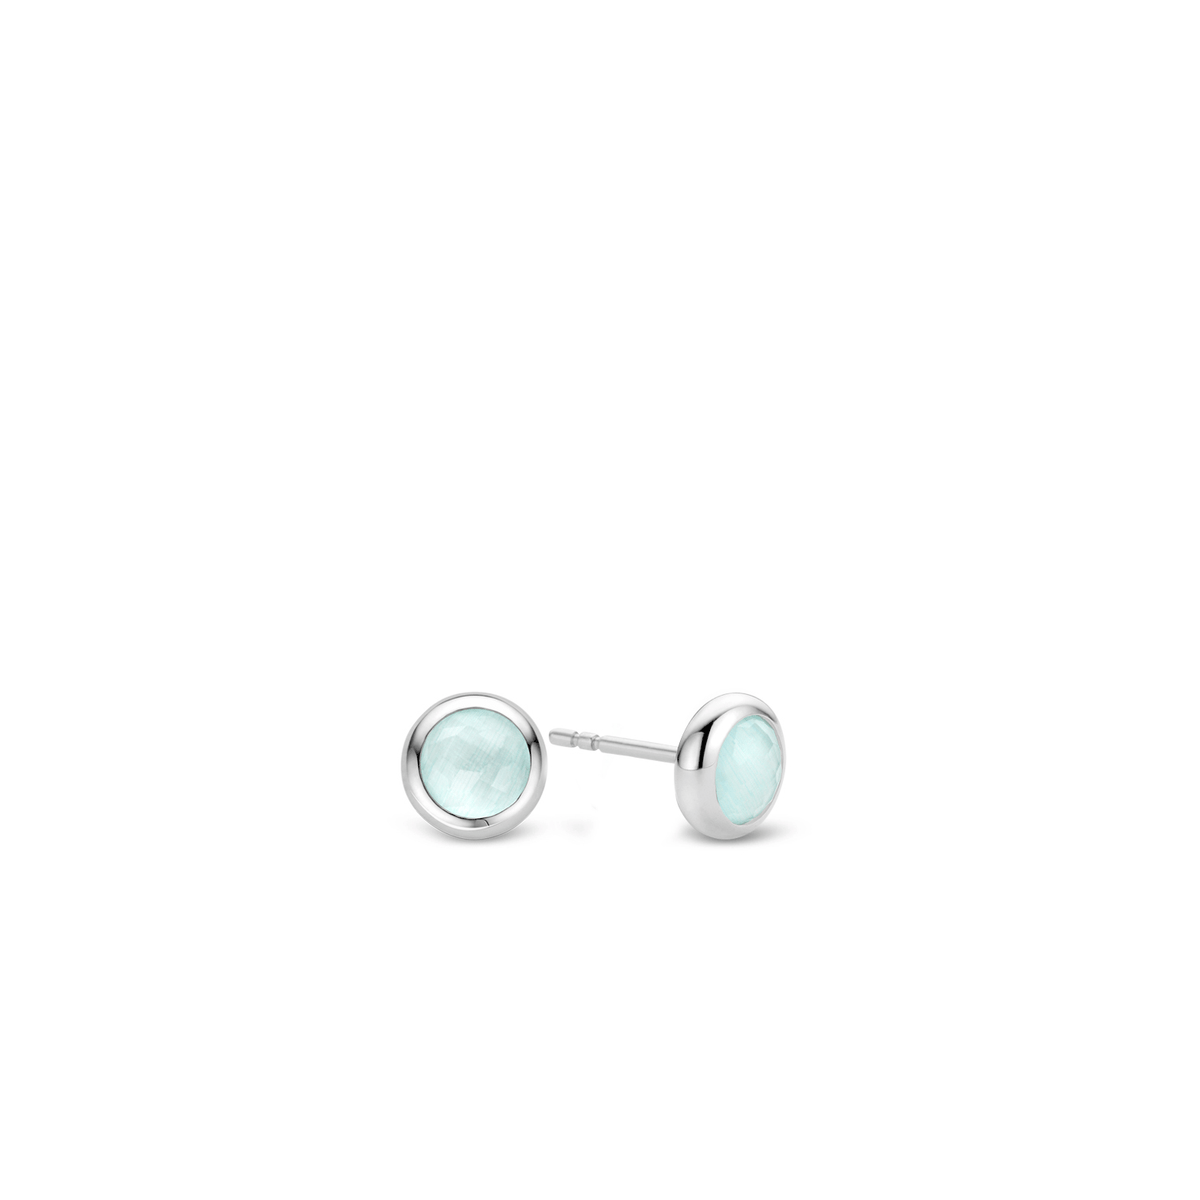 TI SENTO - Milano Earrings 7748AG